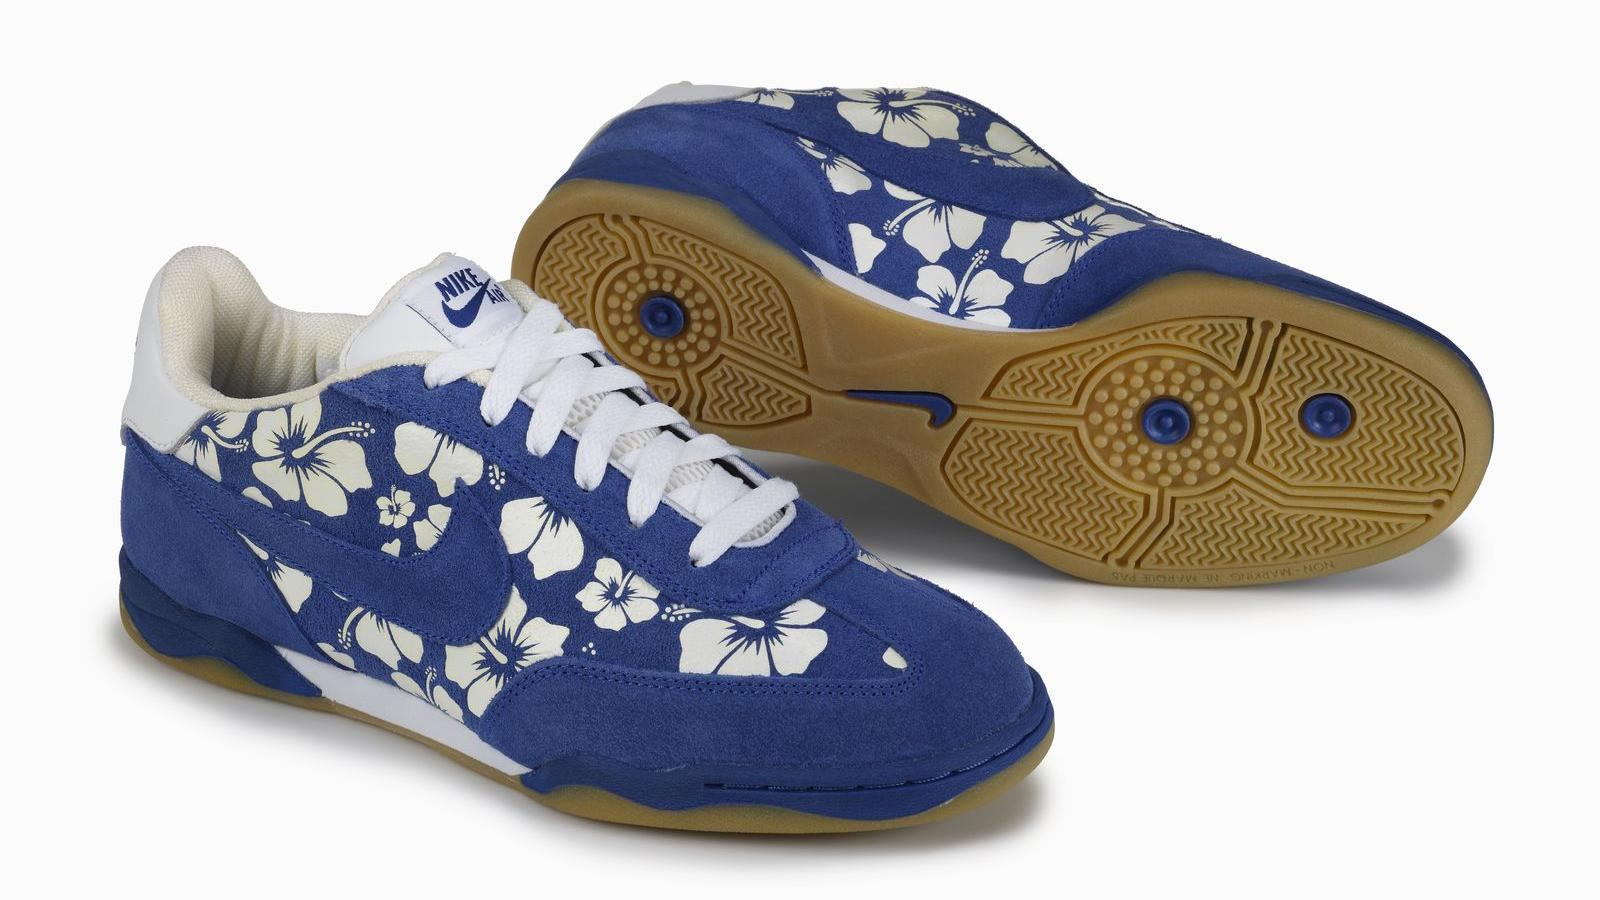 Leah Heilman-Pollack, 2004 Zoom Air FC: Hibiscus flowers on right lateral quarter, gum outsole on right shoe